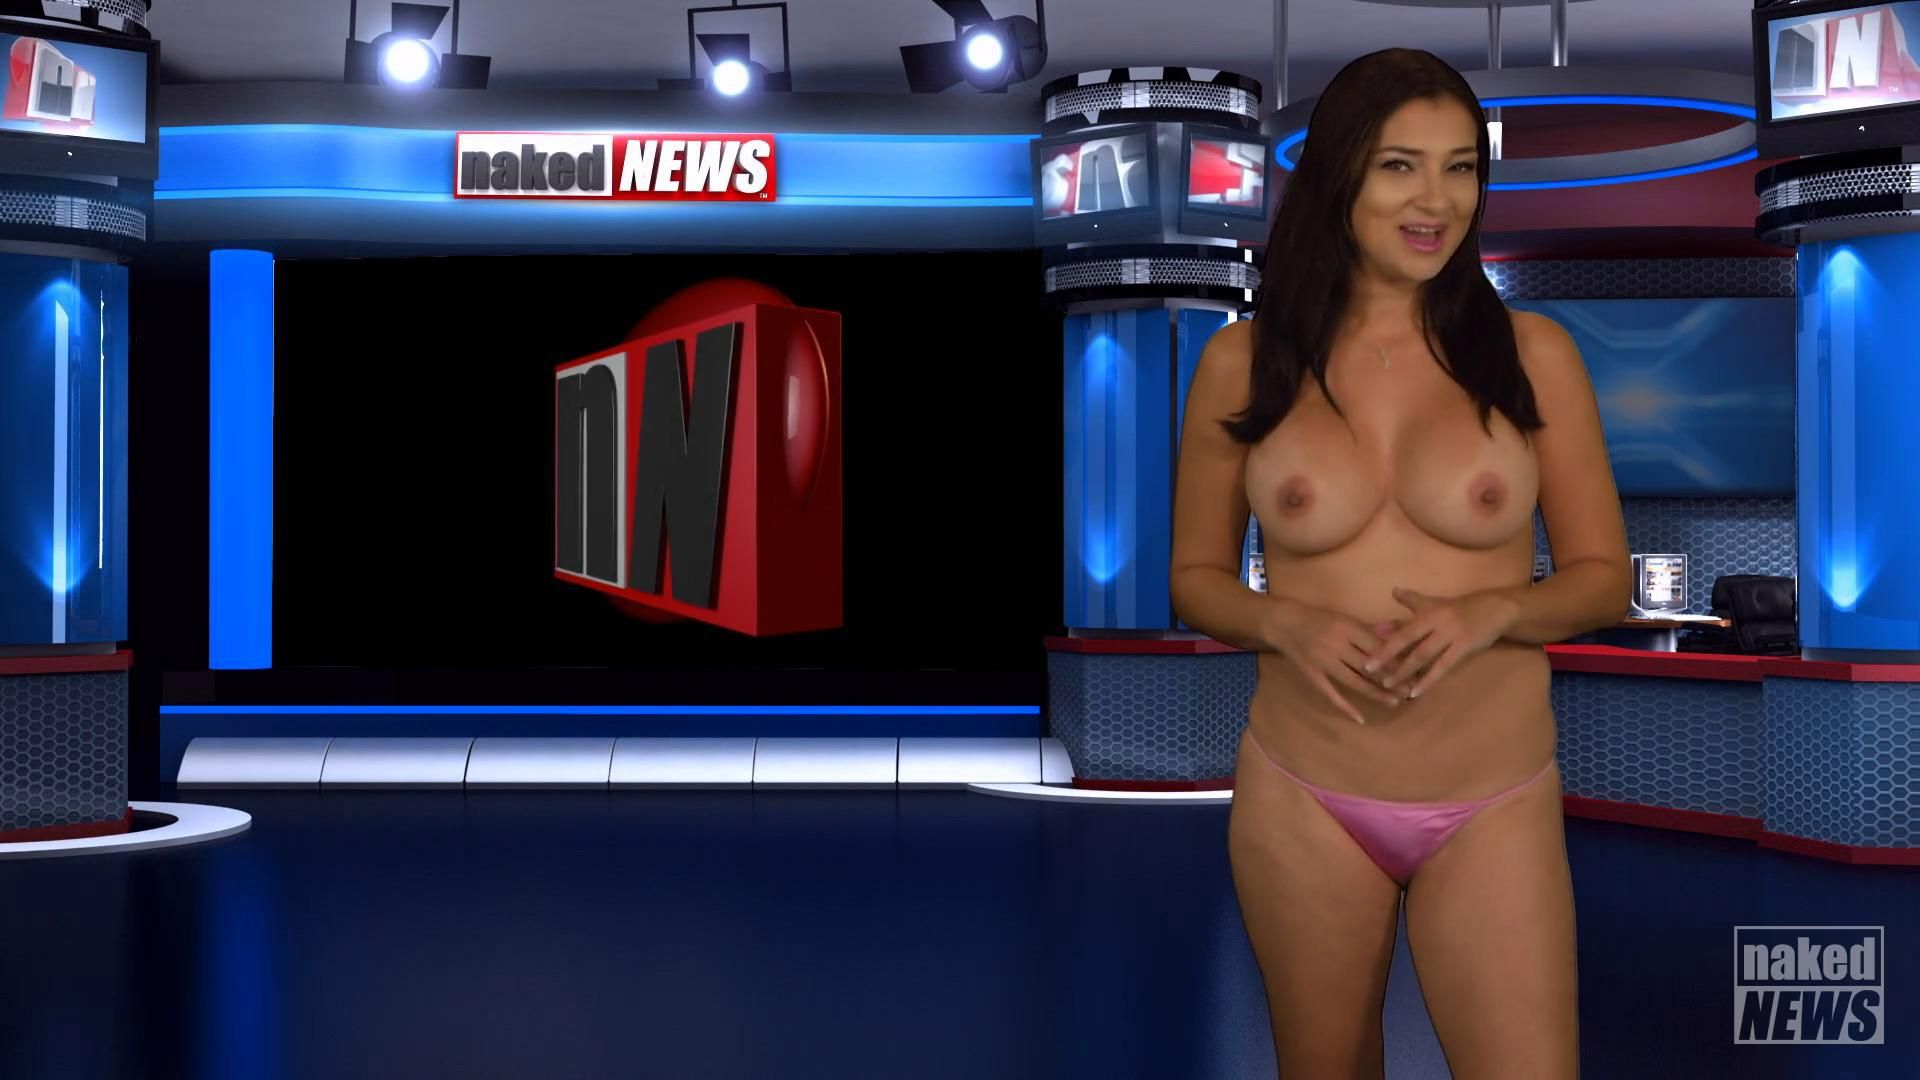 Watch naked news episodes online free